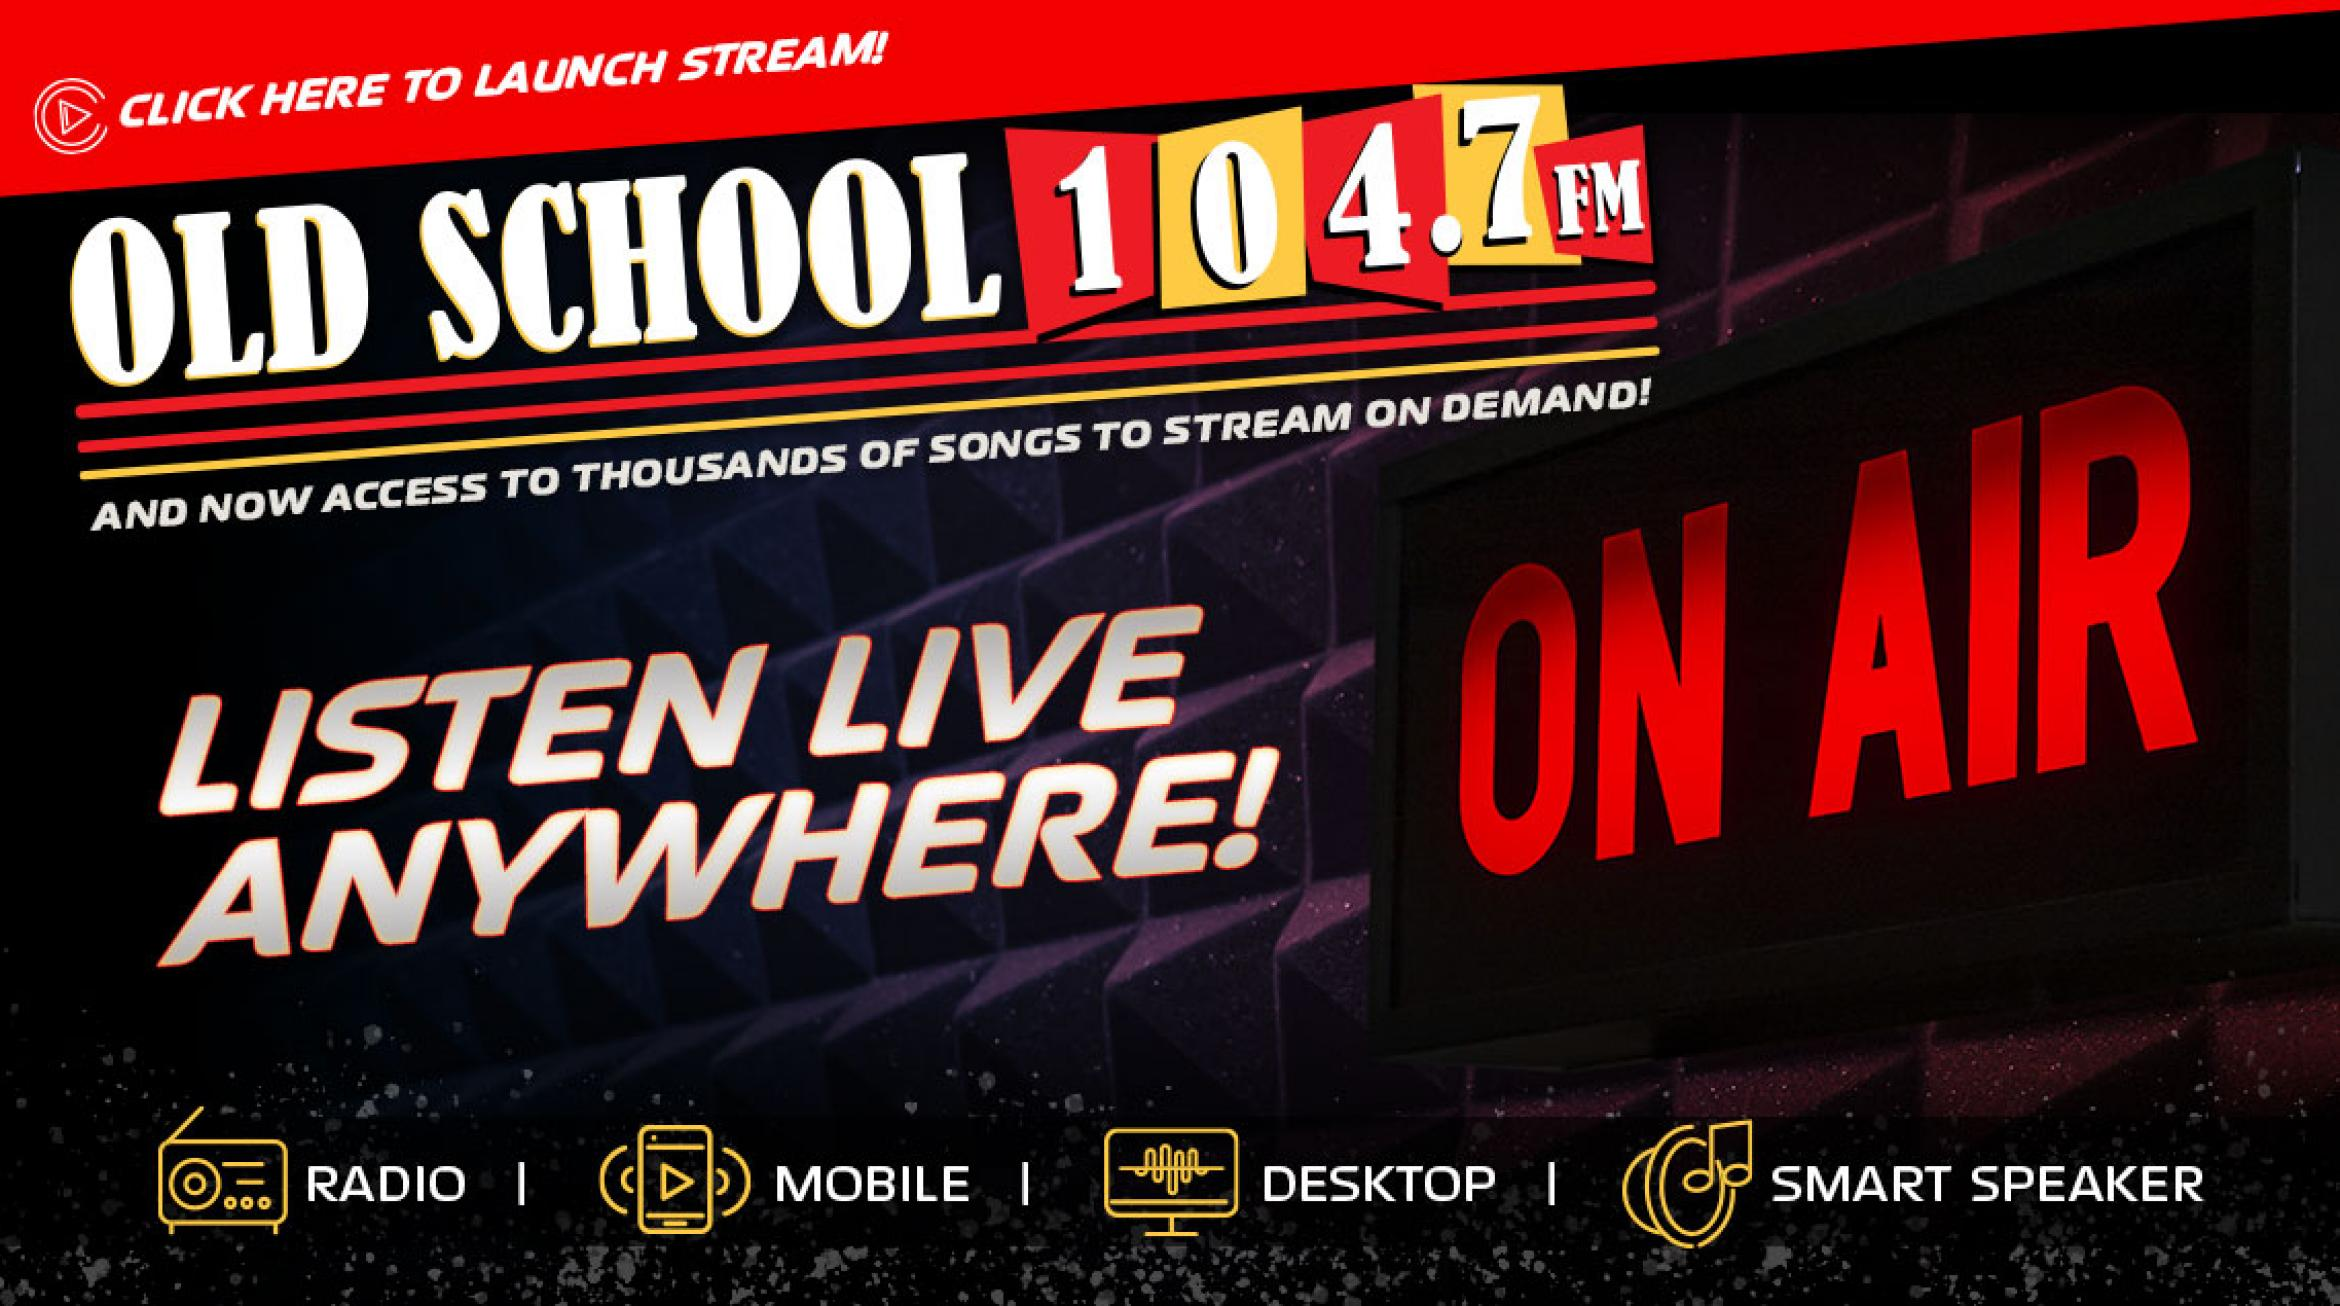 1140x635 ListenLive Anywhere Oldschool Rev